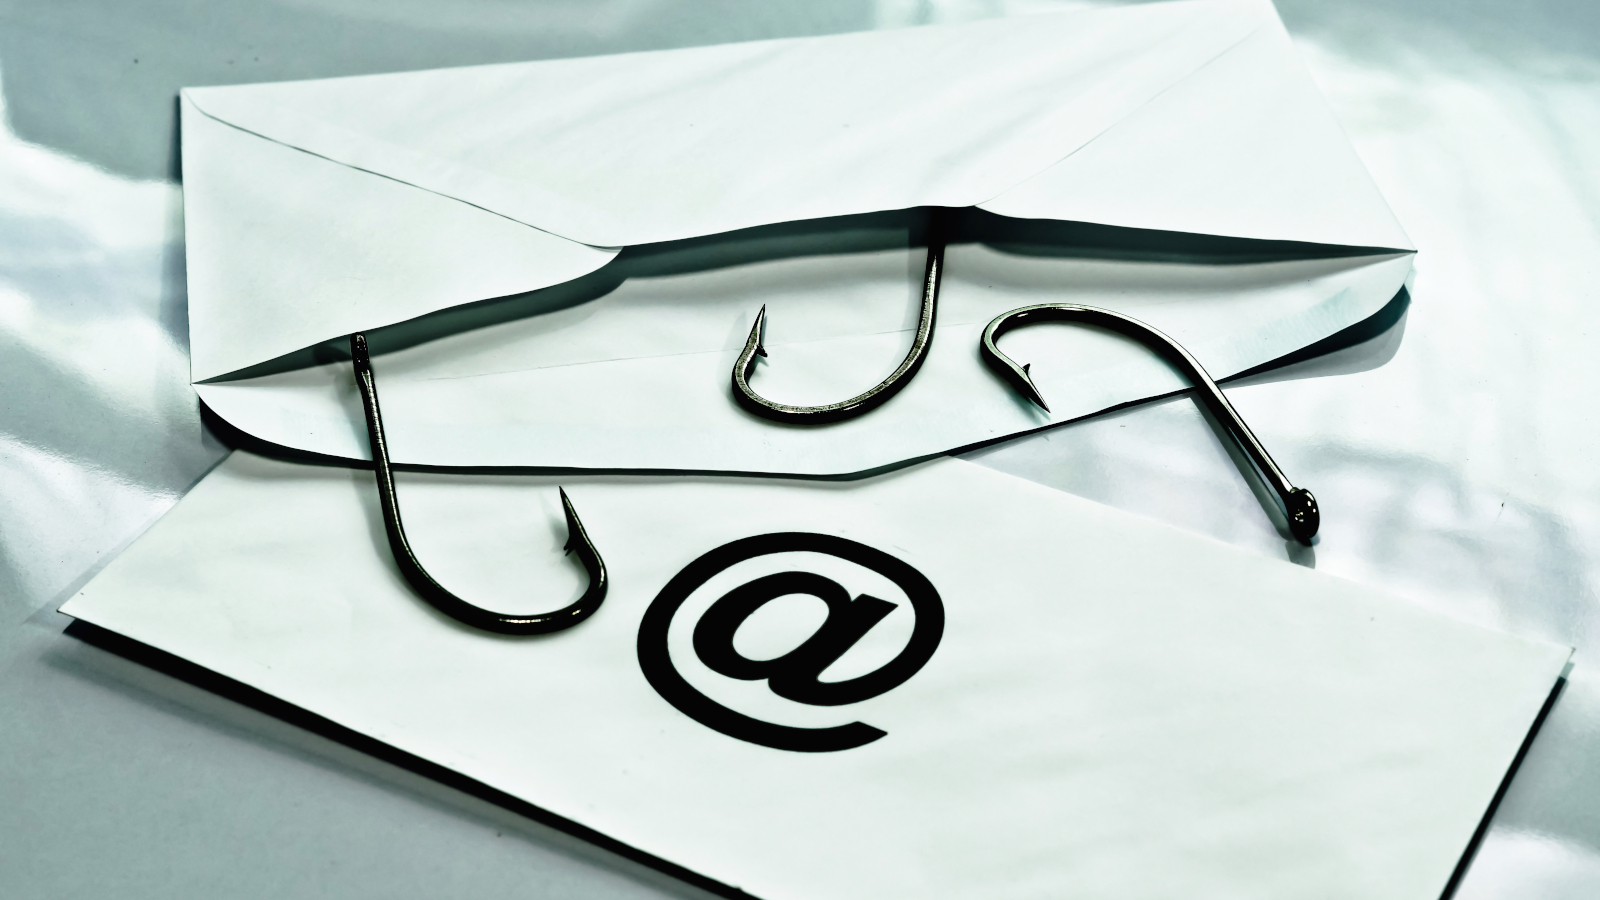 This Is How Phishing Actors Move to Grab Hosting Provider Accounts